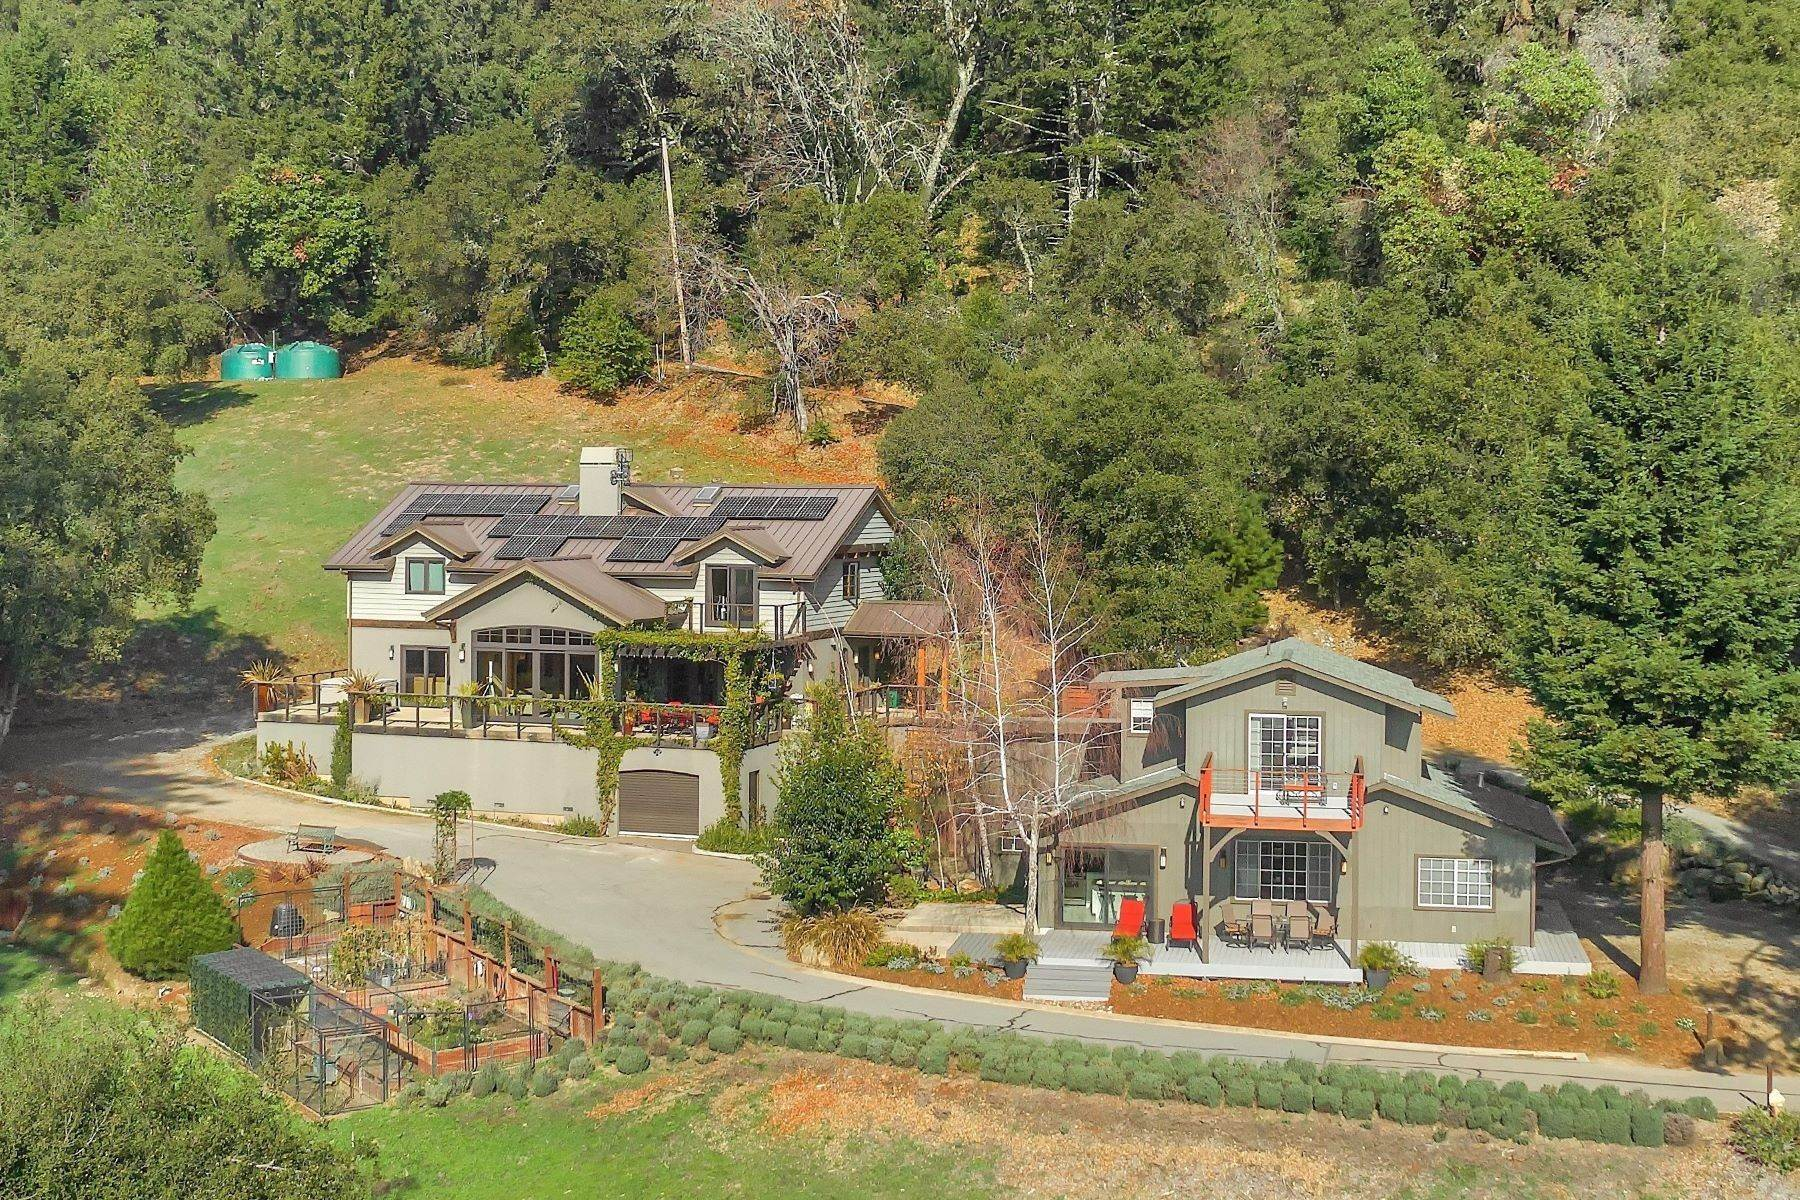 Single Family Homes für Verkauf beim 4 Acres, 2 Homes, Views of Monterey Bay 24964 Skyland Ridge Road Los Gatos, Kalifornien 95033 Vereinigte Staaten